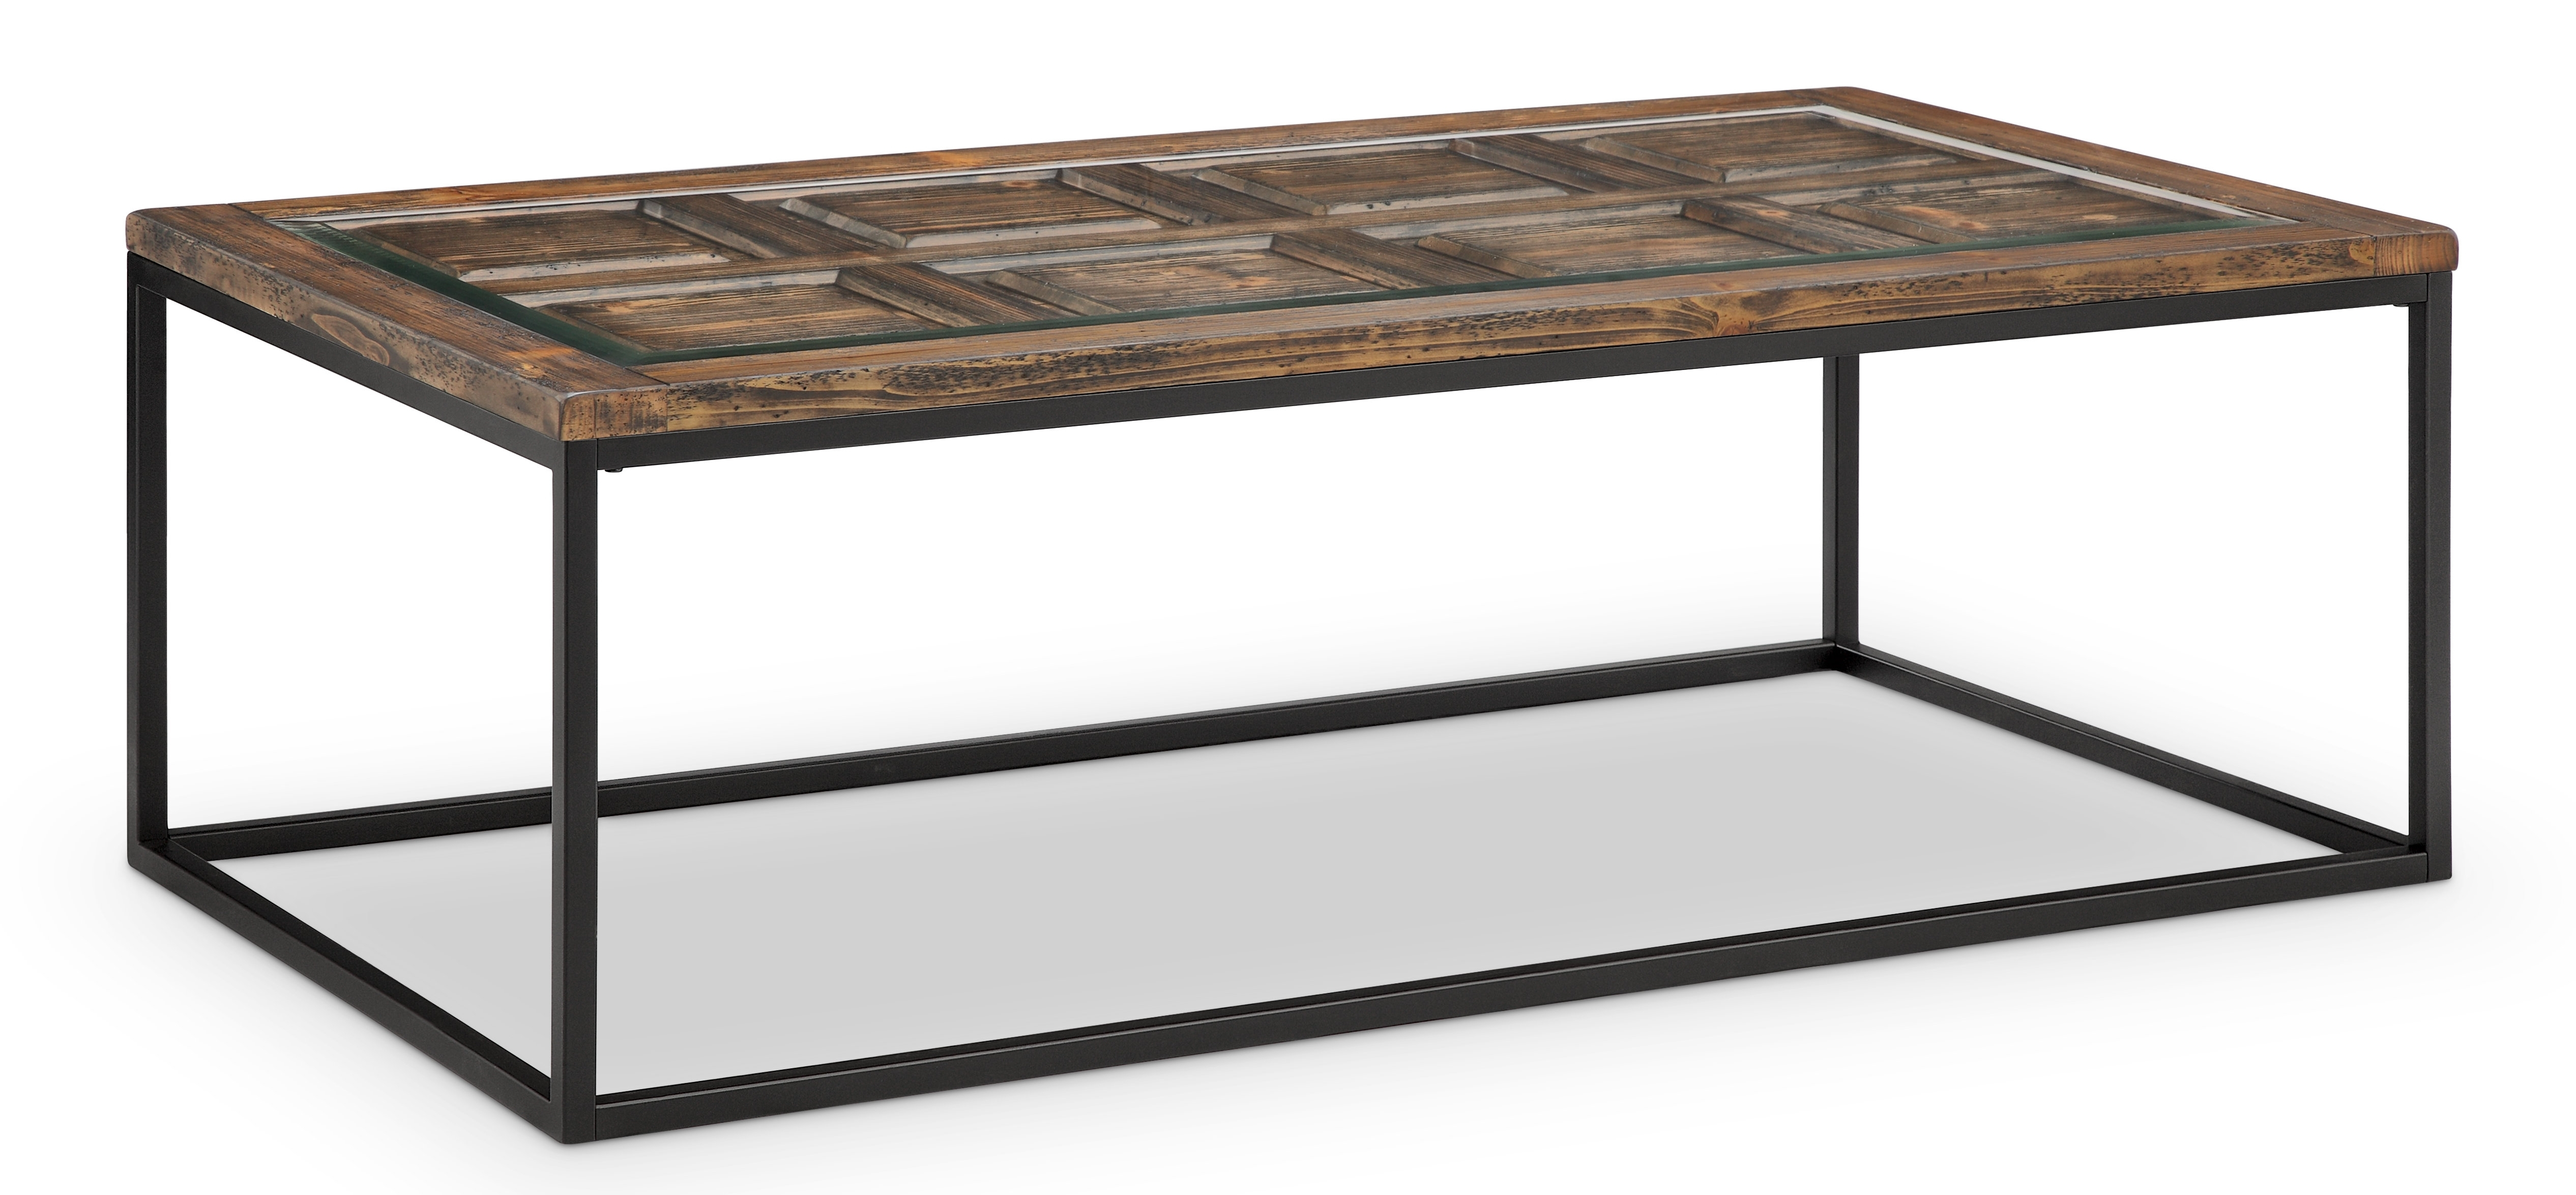 Gracie Oaks Ajit Rectangular Coffee Table & Reviews | Wayfair in Element Ivory Rectangular Coffee Tables (Image 10 of 30)